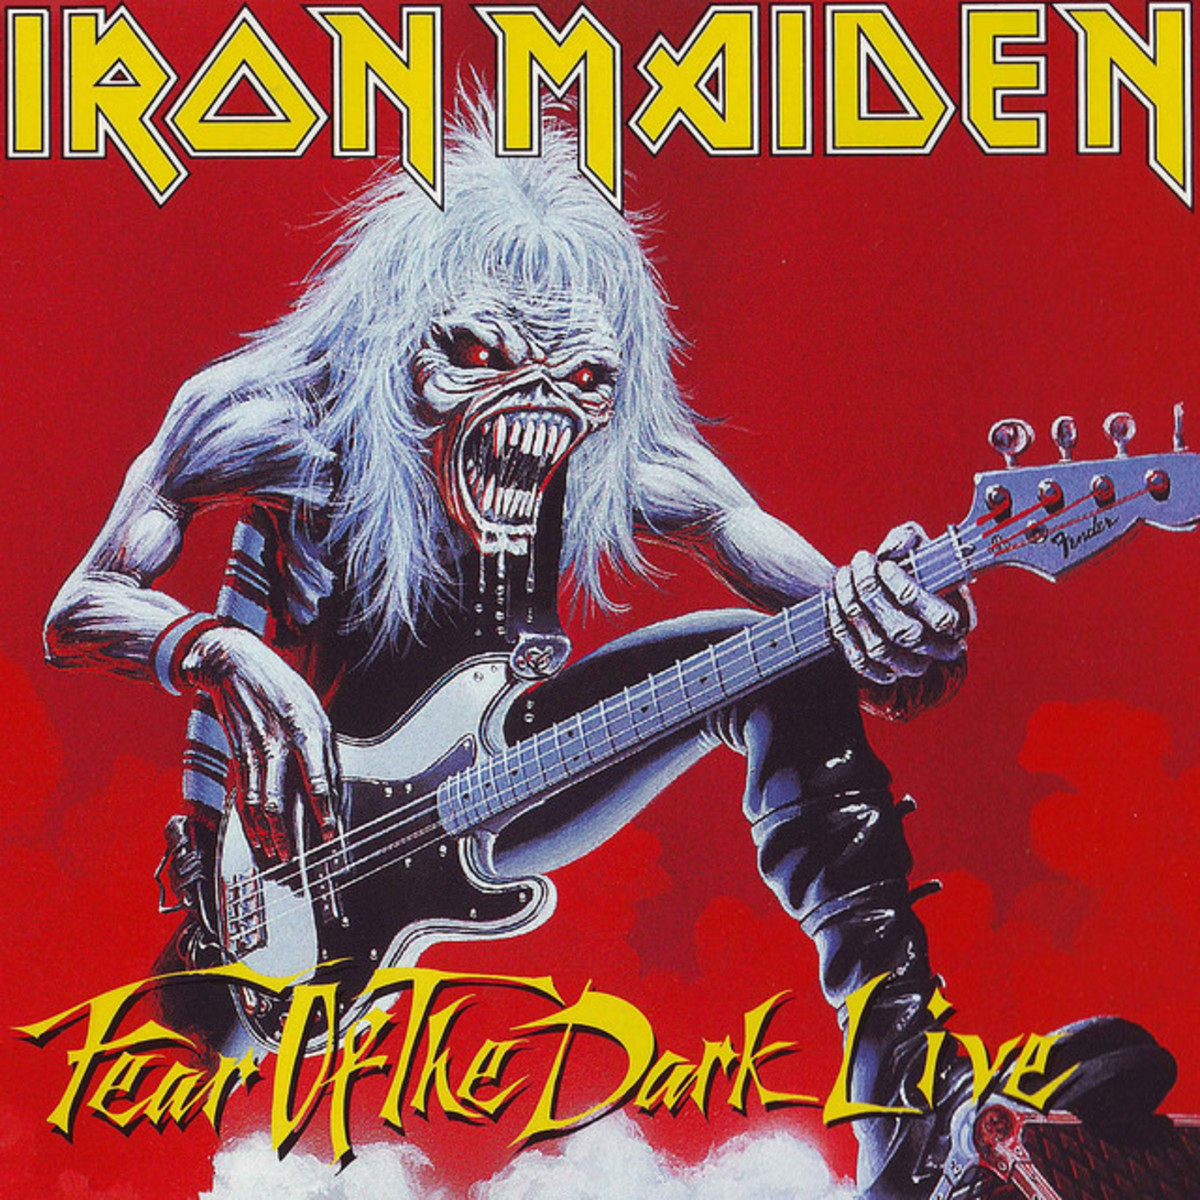 "Iron Maiden ""Fear the Dark"" Live EMI 7243 88050166 12"" Maxi Vinyl Single Italian Pressing (1993) Cover Art by Derek Riggs"